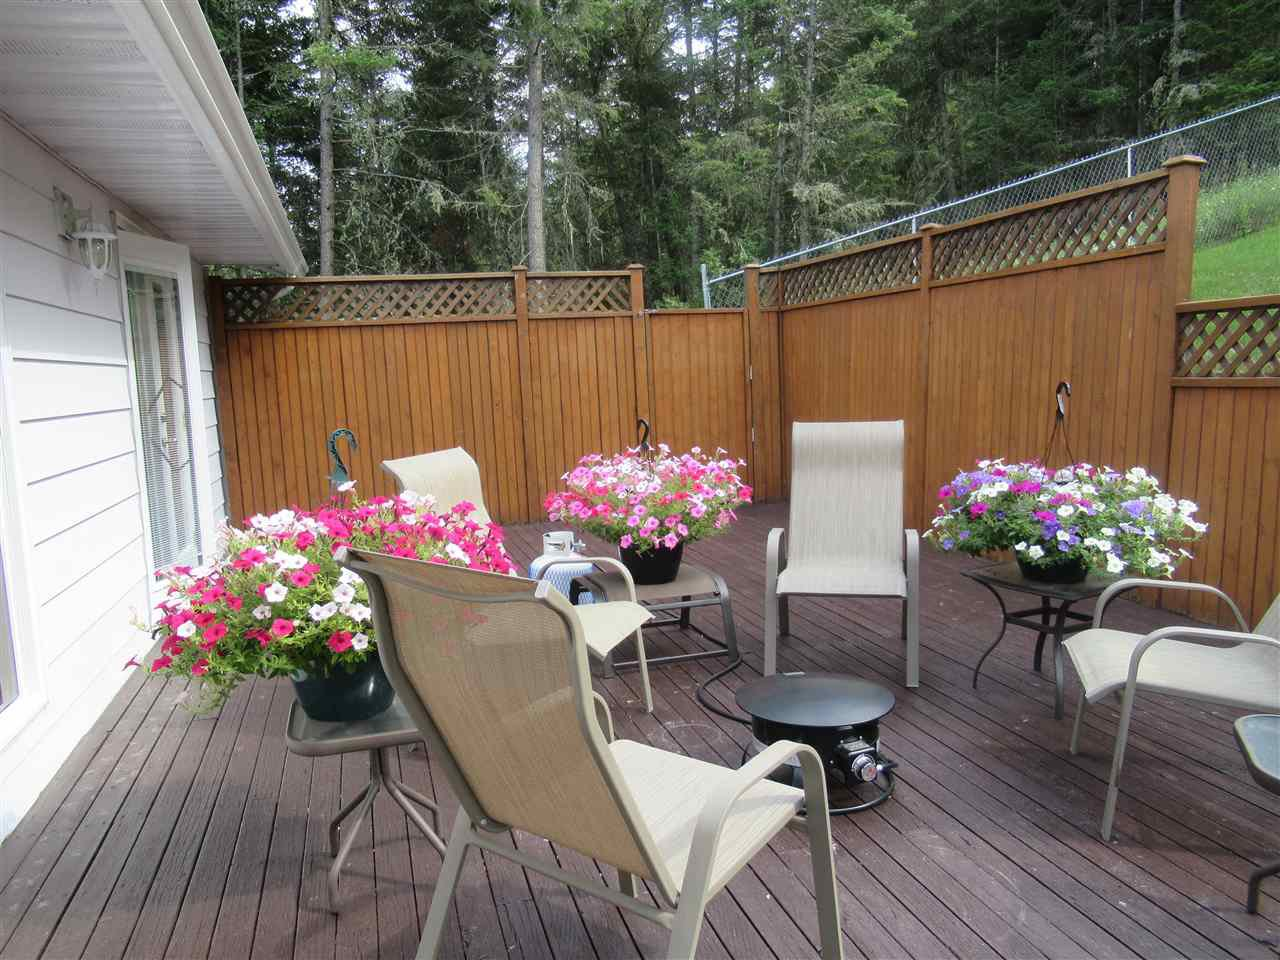 Photo 18: Photos: 607 ROBERTS Drive in Williams Lake: Esler/Dog Creek House for sale (Williams Lake (Zone 27))  : MLS®# R2391926